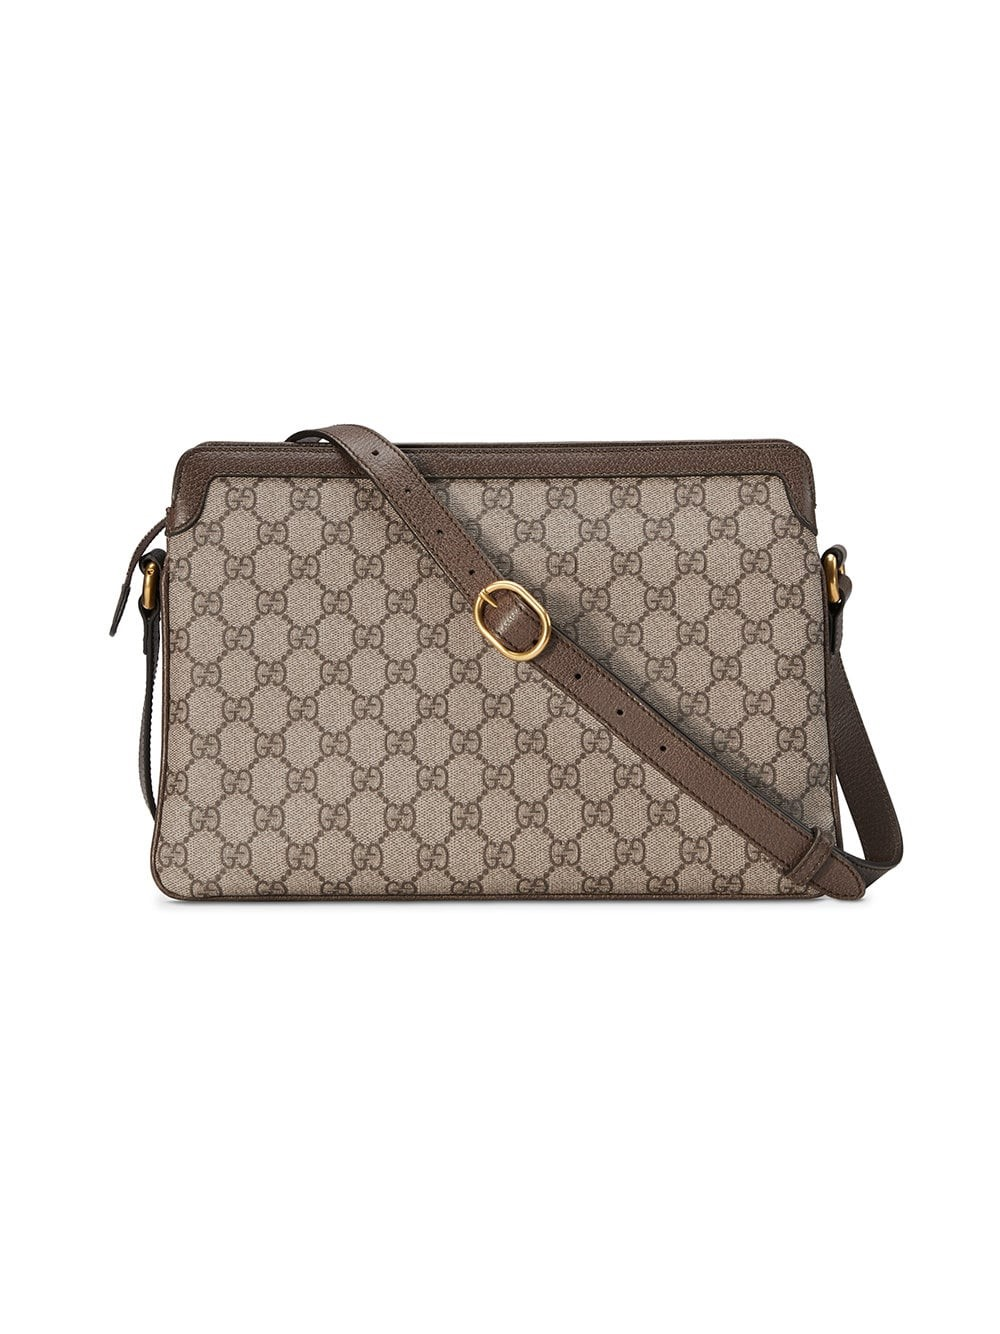 a900b9b1ff gucci GG SUPREME MEDIUM SHOULDER BAG available on montiboutique.com ...